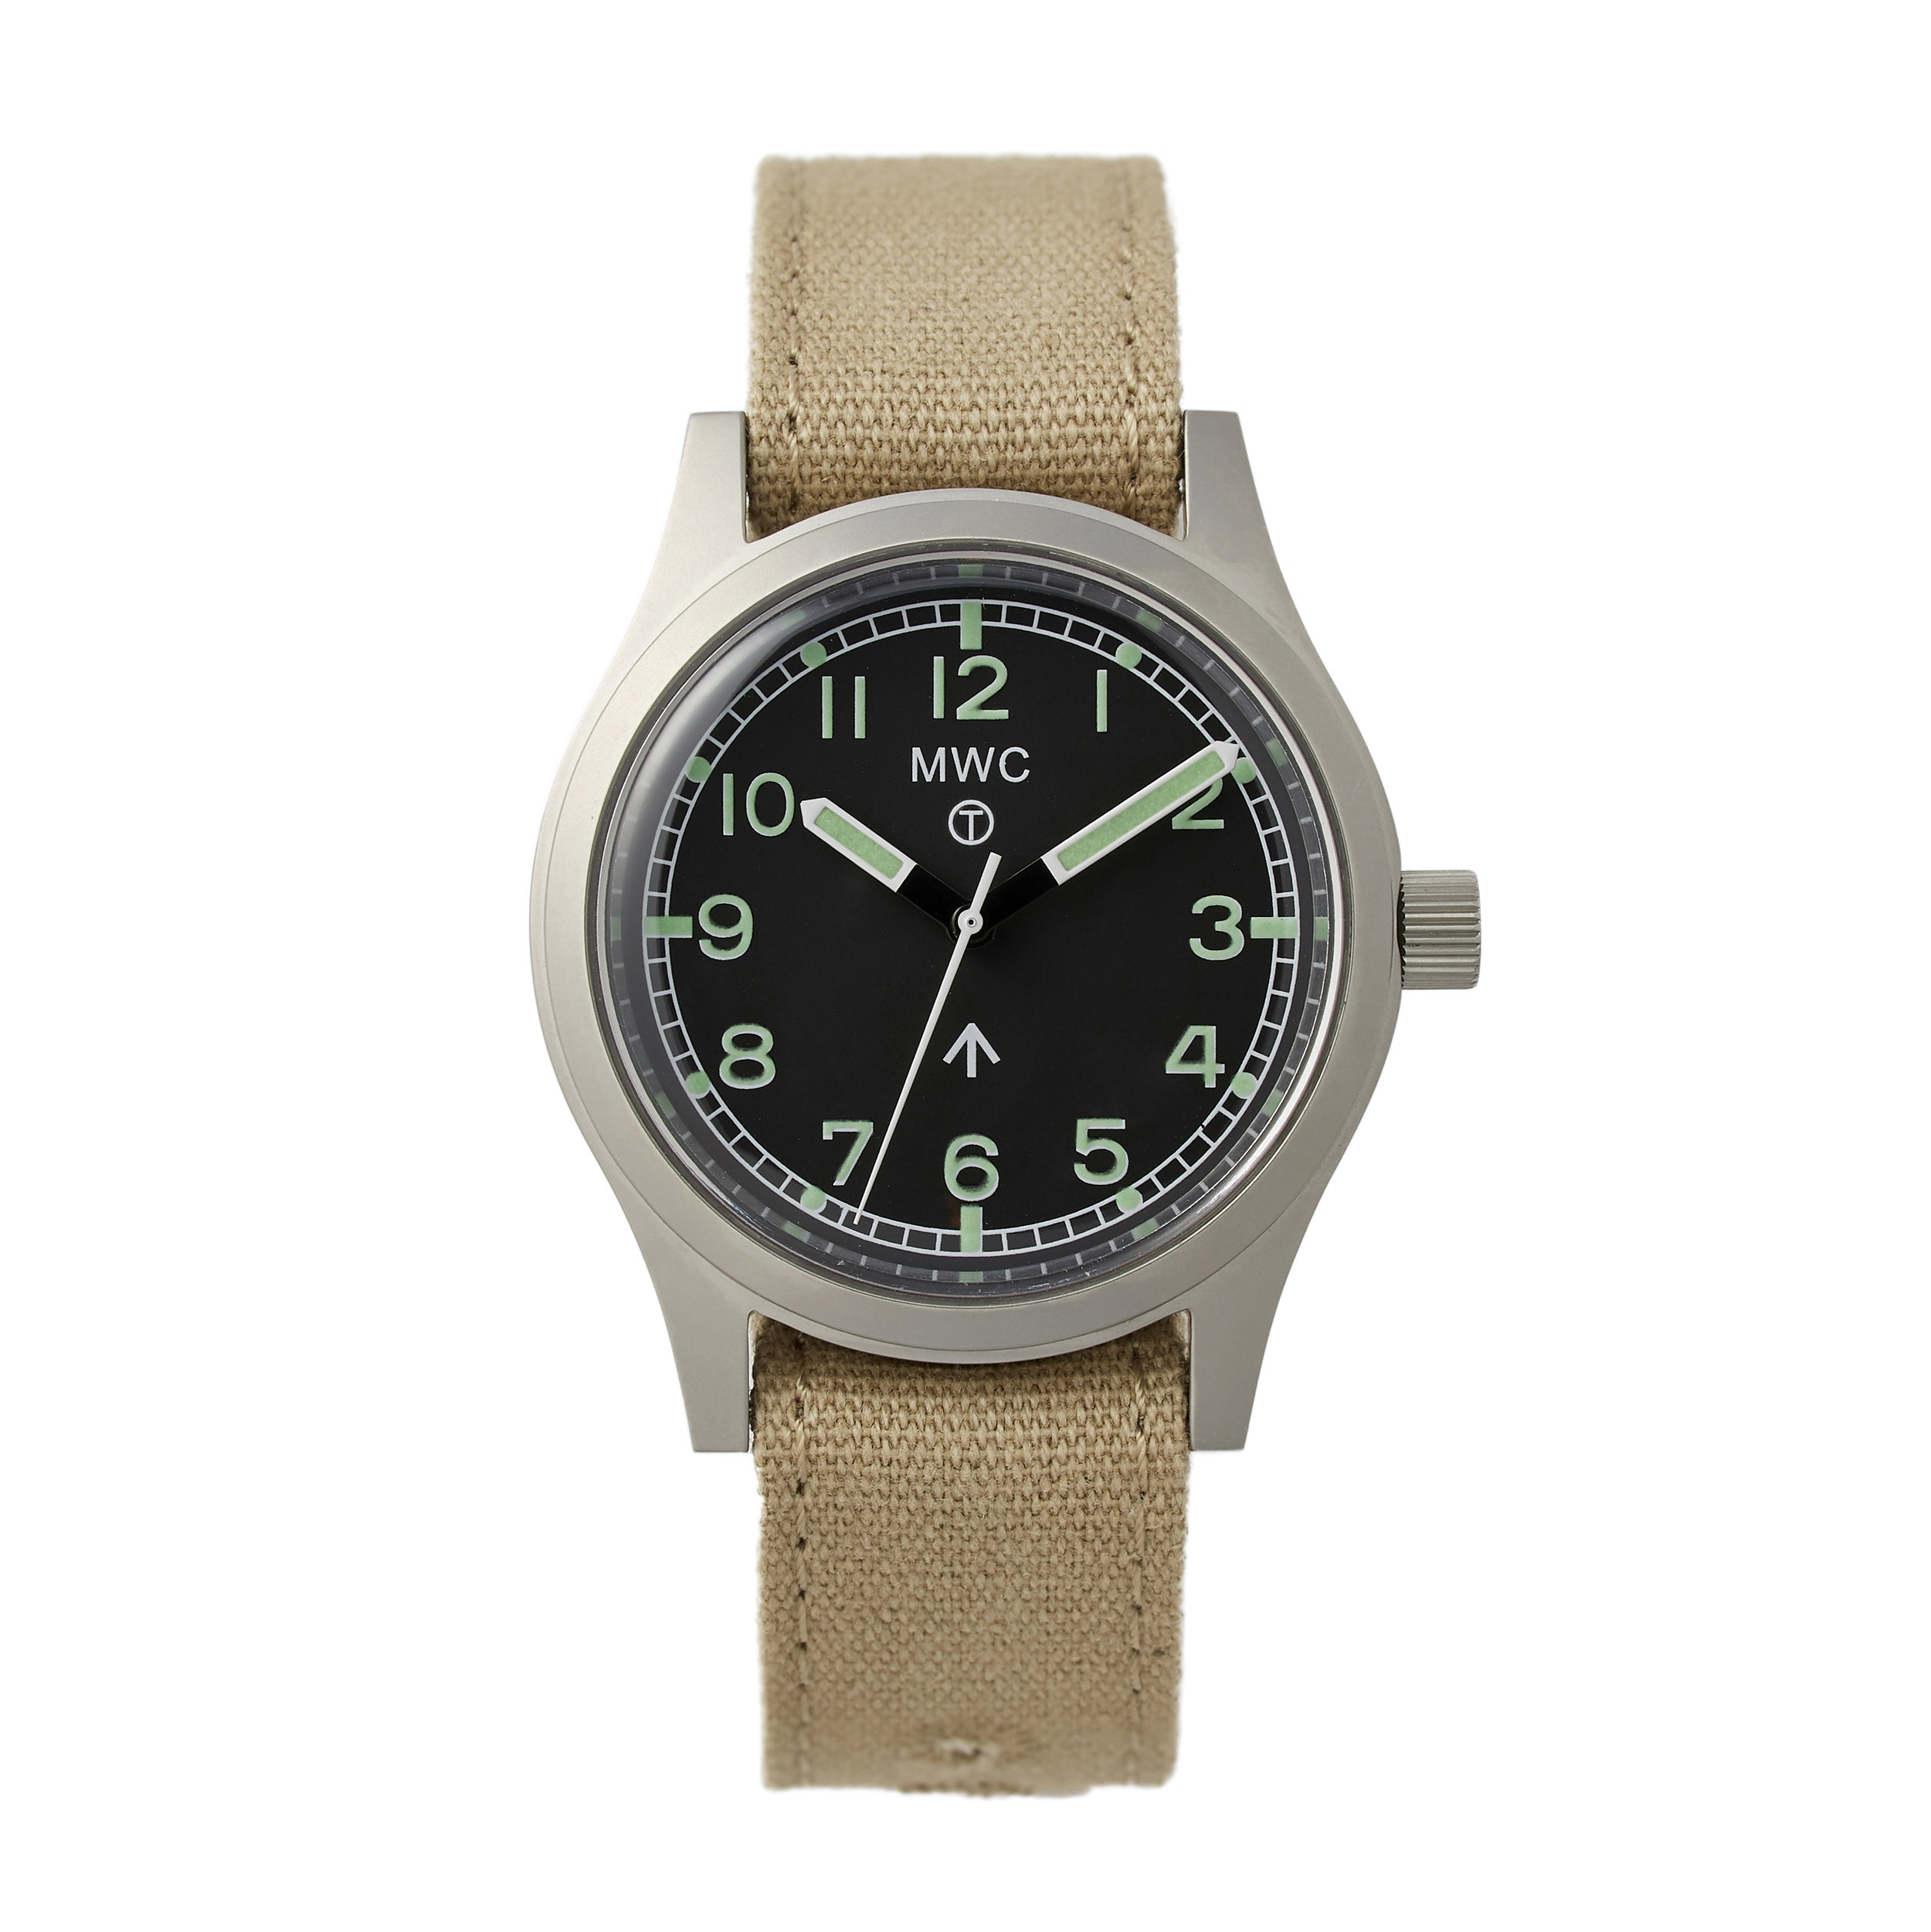 """MWC British Army General Service Watch - Modeled after the 1940s-60's standard issue British Army watches. For historical accuracy, MWC kept the encircled """"T"""", heavy 316L stainless steel case, and canvas straps that were used during this era. I swapped out the canvas one for a camo NATO strap from Crown & Buckle."""